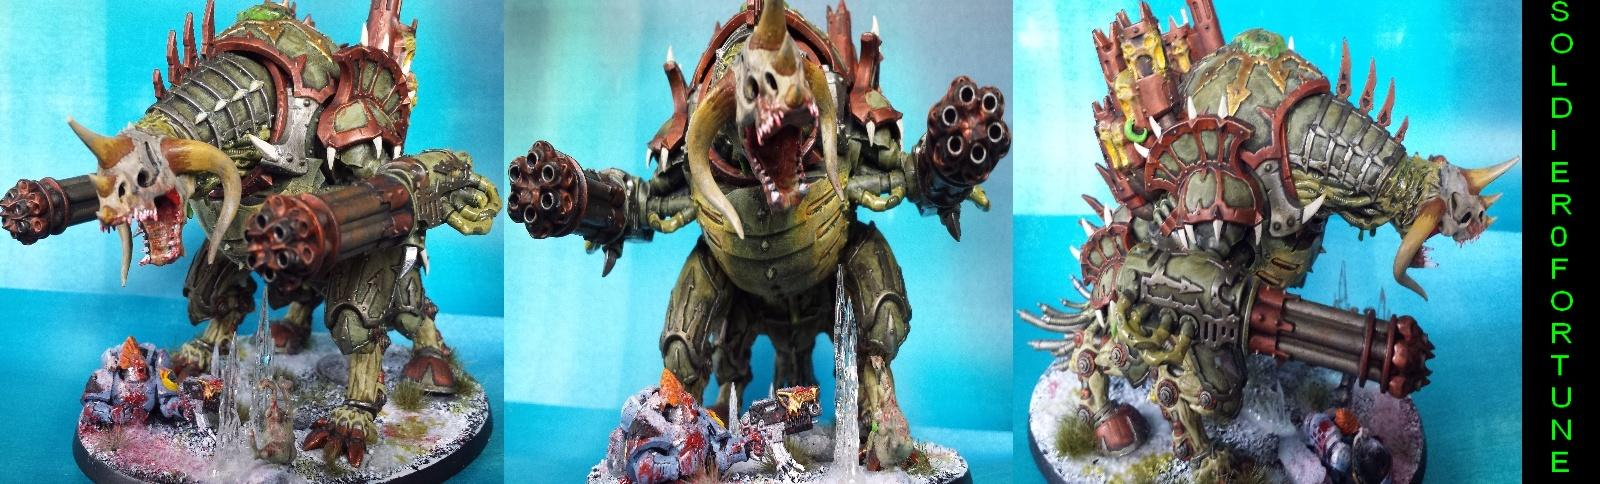 Chaos Space Marines, Death Guard, Decay, Filth, Forgefiend, Nurgle, Plague Marines, Rot